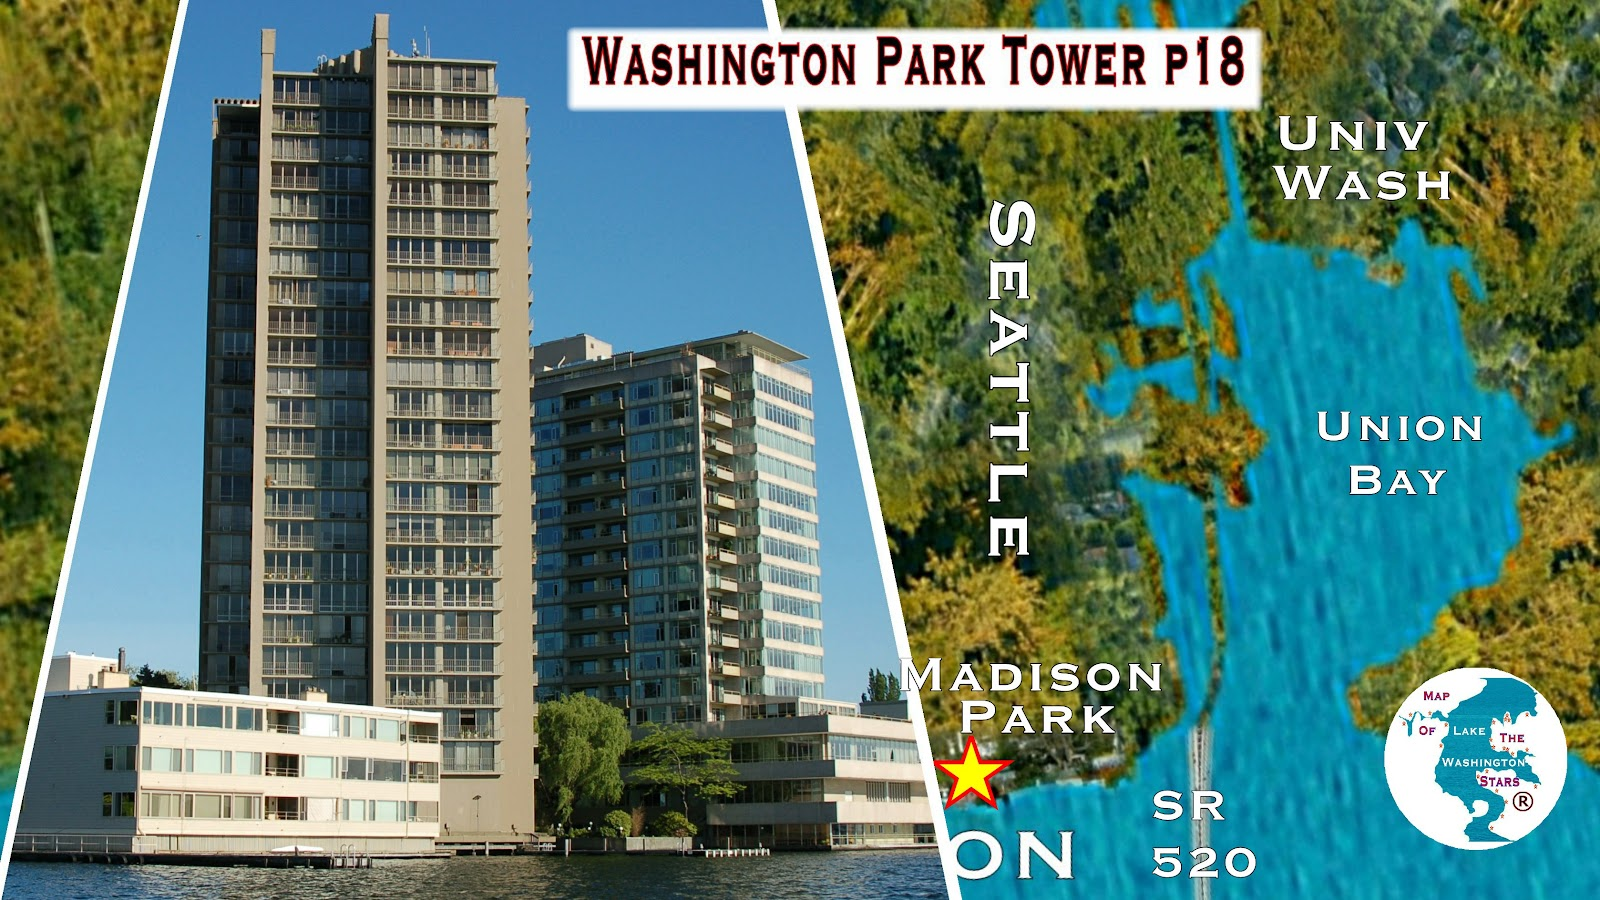 Madison Park Waterfront Mansions Investment Banking Blog Articles